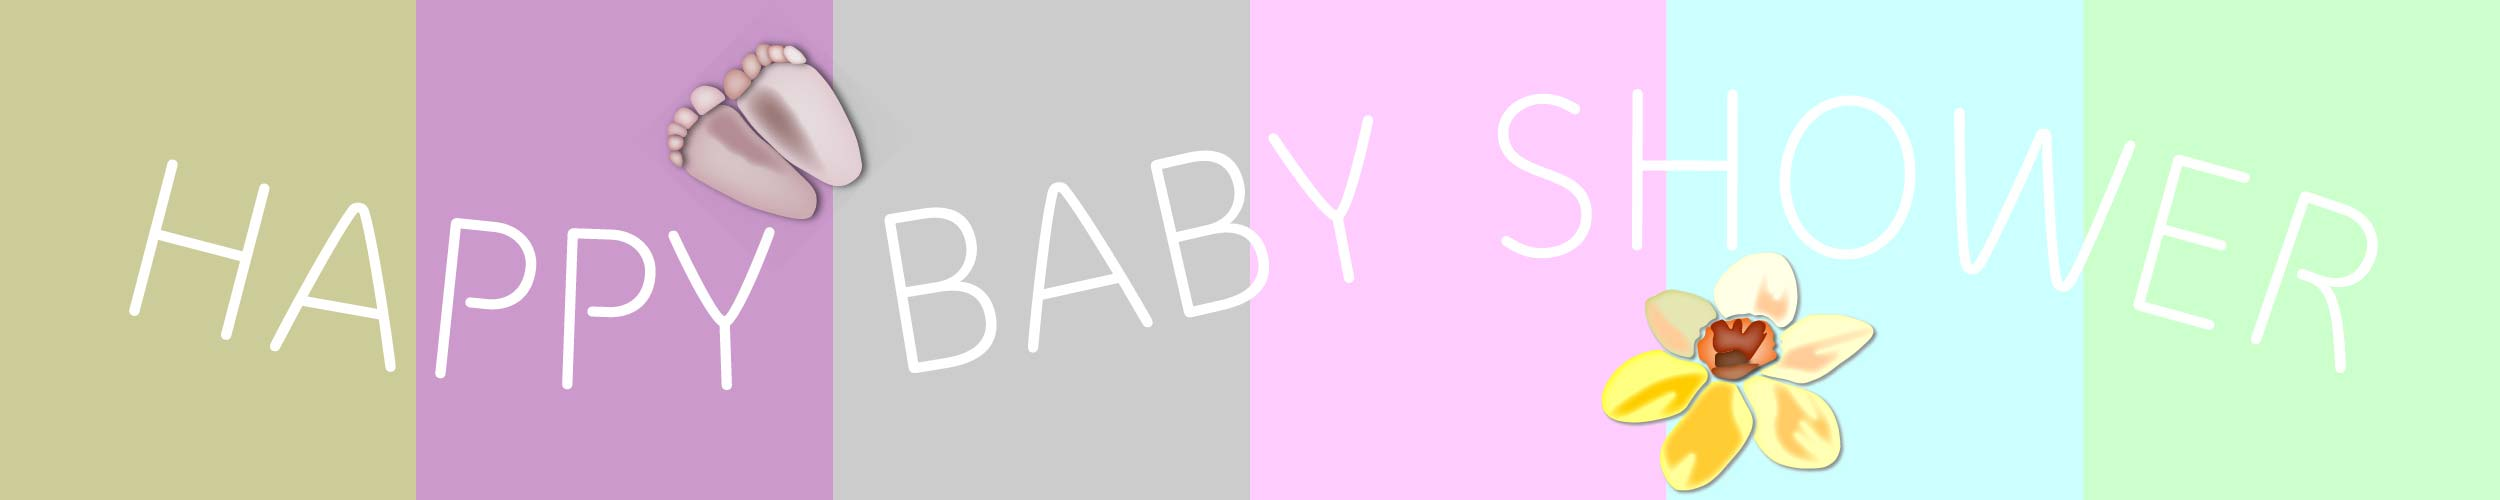 HAPPY BABY SHOWER banner.jpg